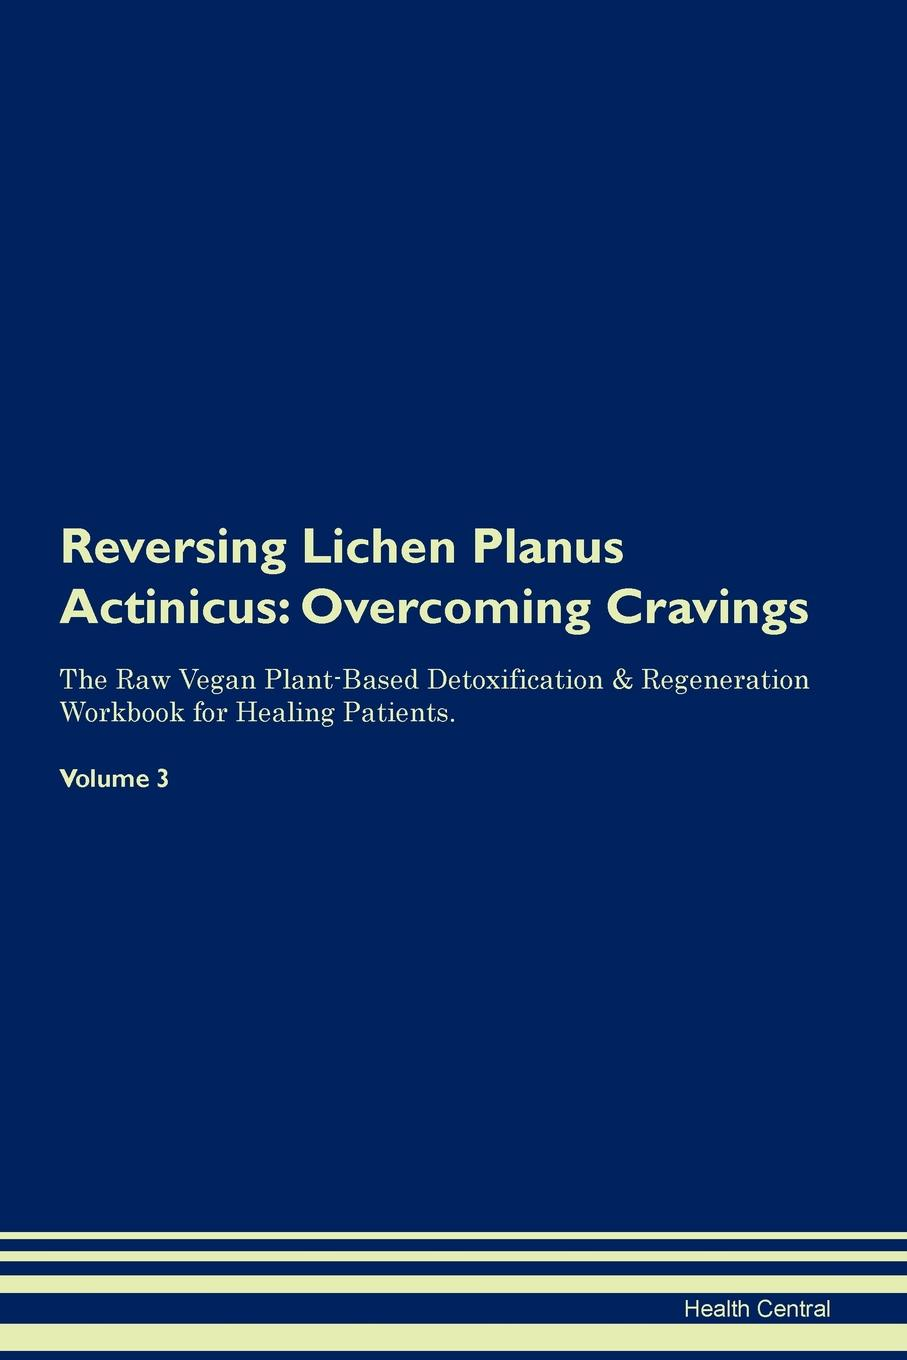 Фото - Health Central Reversing Lichen Planus Actinicus. Overcoming Cravings The Raw Vegan Plant-Based Detoxification & Regeneration Workbook for Healing Patients. Volume 3 health central reversing lichen sclerosus overcoming cravings the raw vegan plant based detoxification regeneration workbook for healing patients volume 3